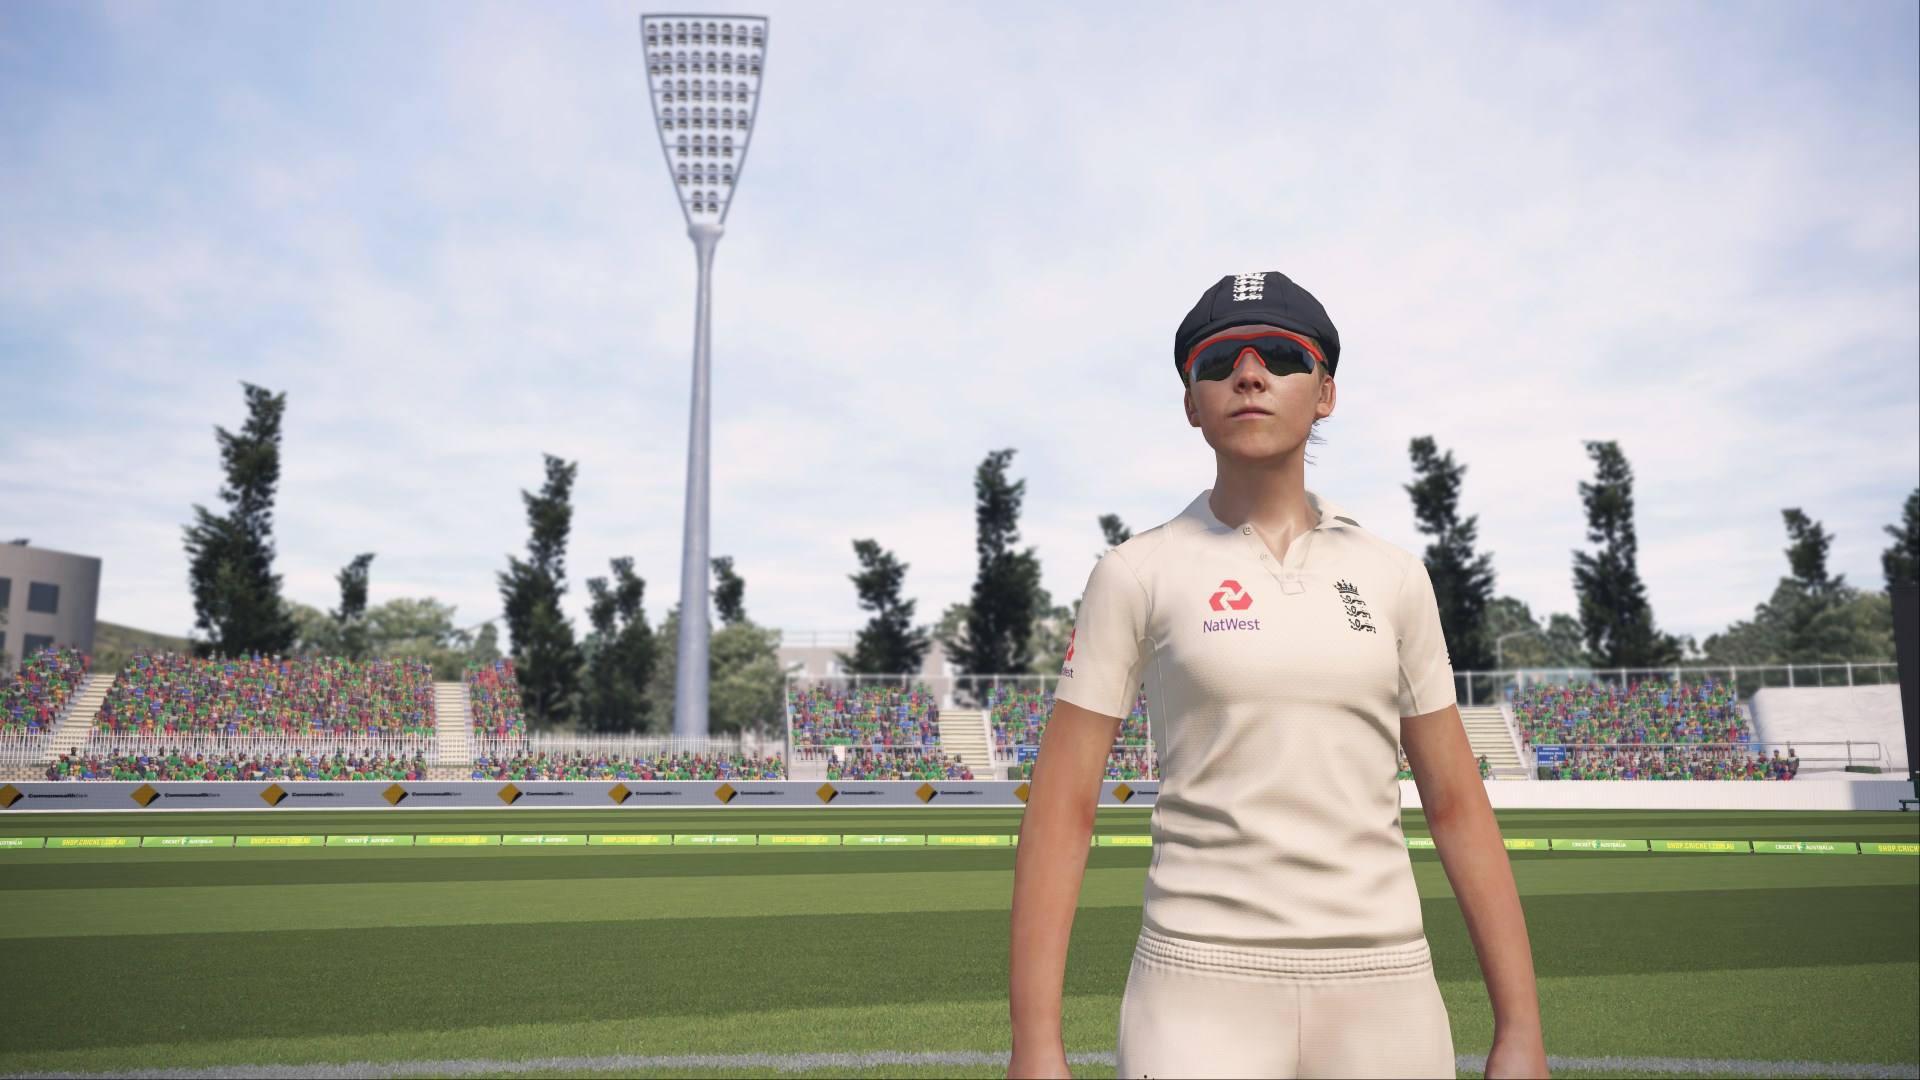 ASHES CRICKET скриншот 4